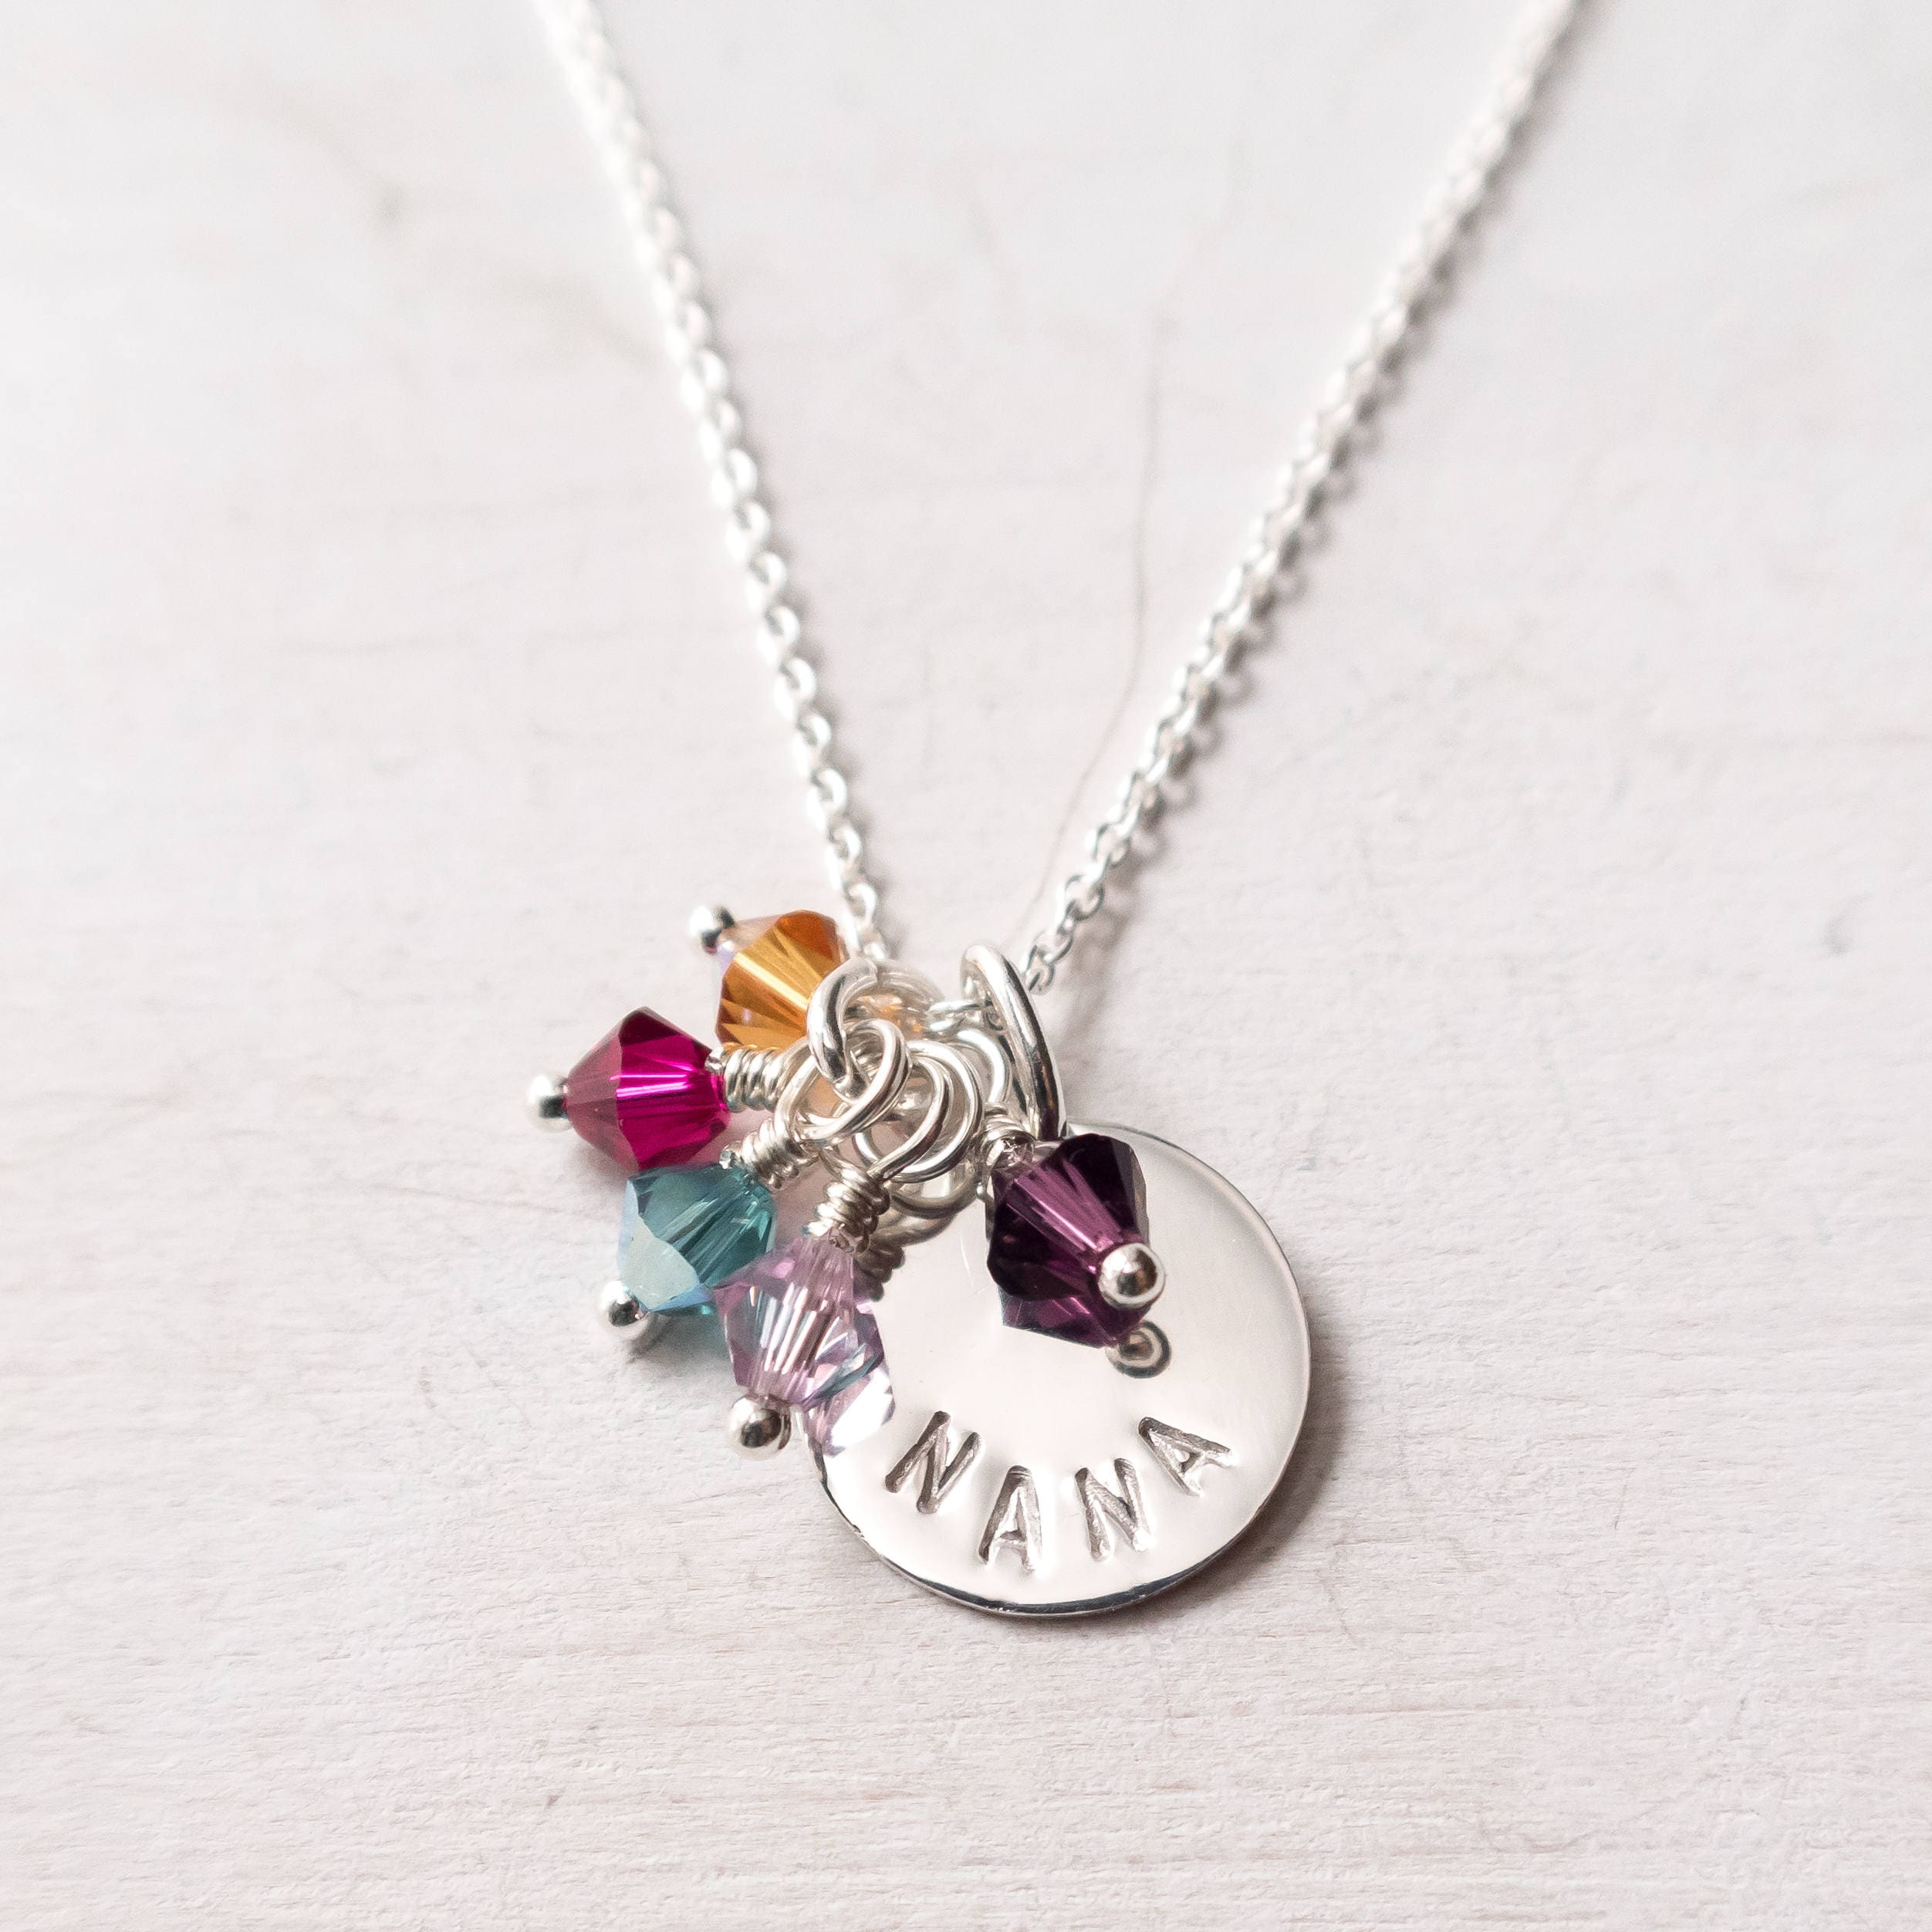 grandkid at necklace sweet gifts heart birthstone mom blossom